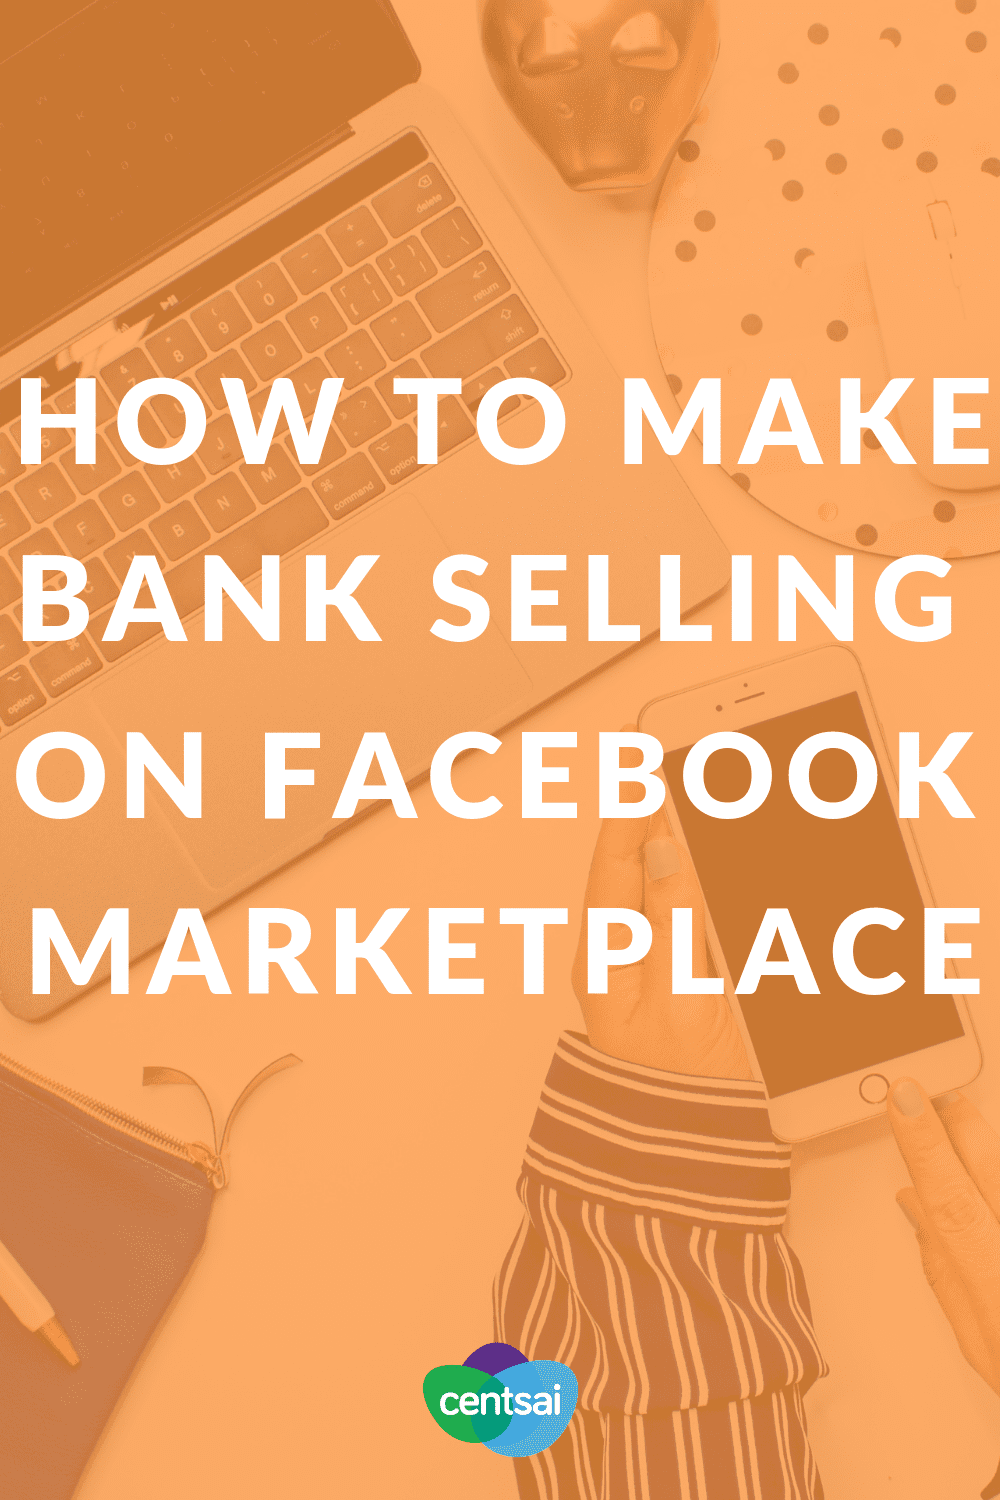 How to Make Bank Selling on Facebook Marketplace. Got tons of clutter around the house? Turn your junk into money! Check out these six easy tips for selling it on Facebook Marketplace. #sidehustle #blogs #personalfinance #makemoney #facebook #extramoney #sidehustle #passiveincome